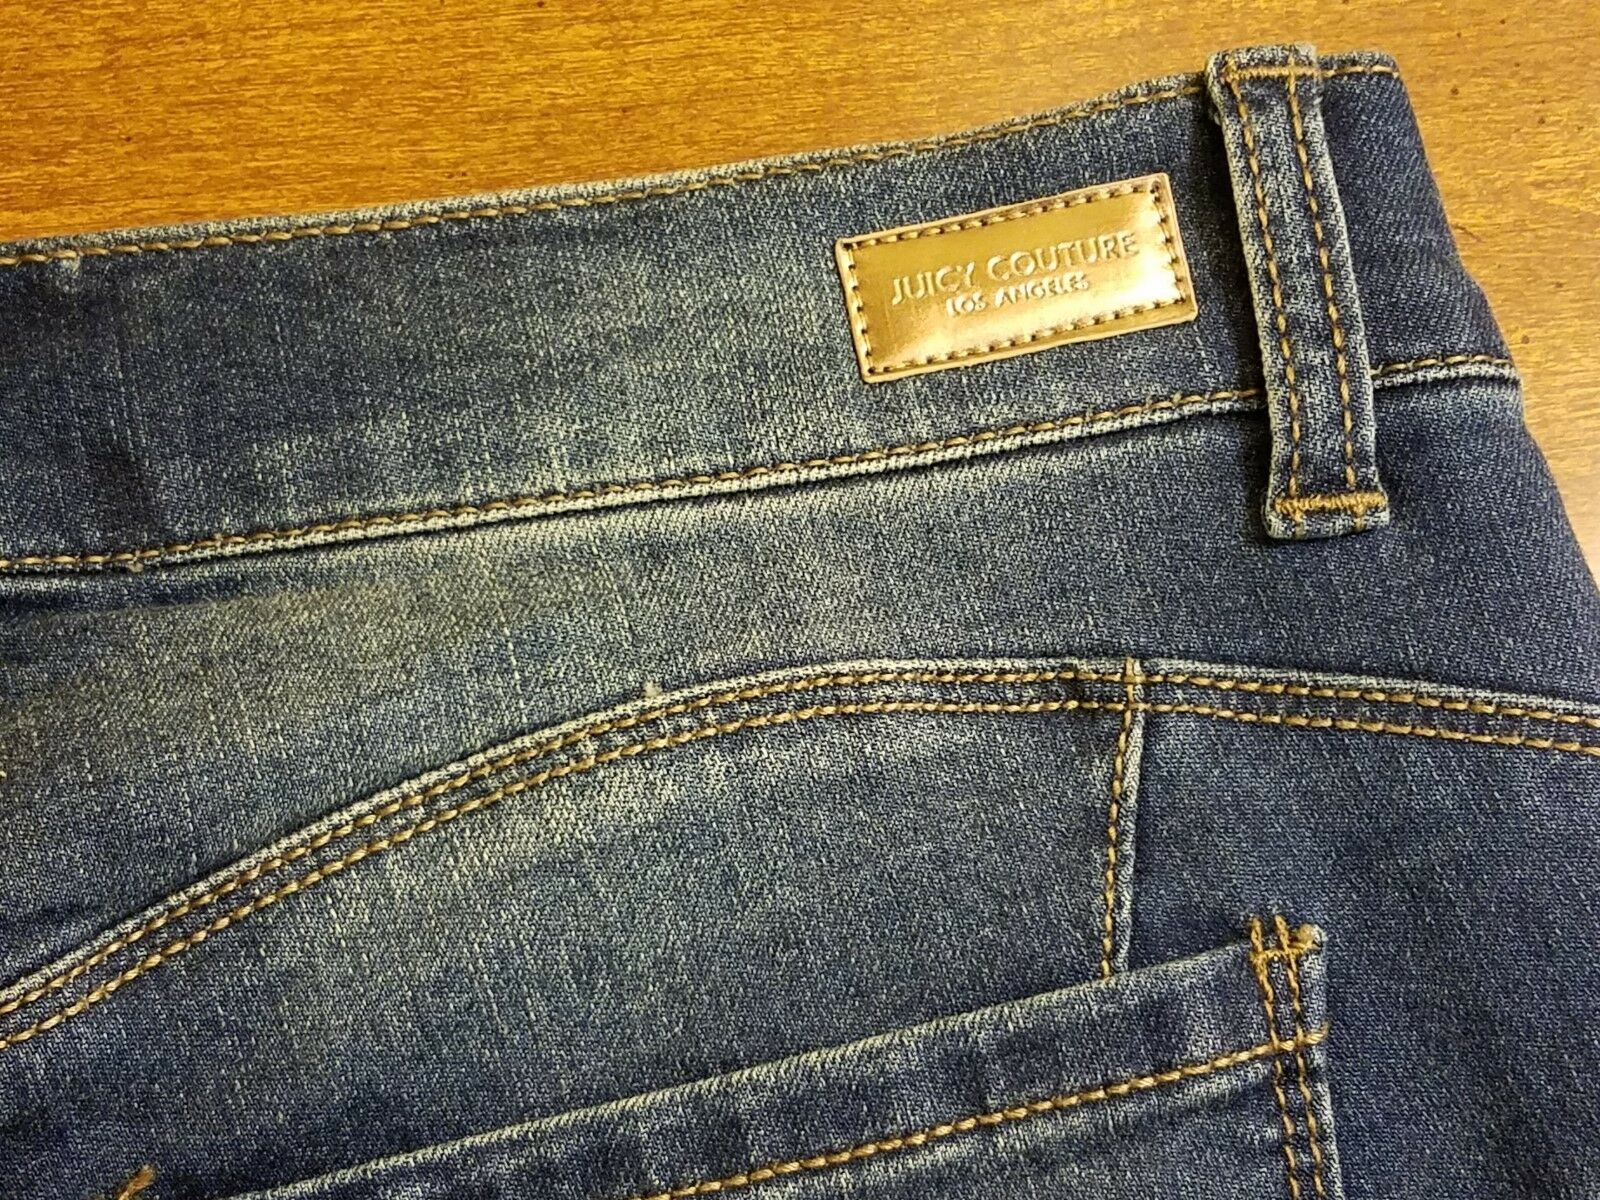 Nwt Juicy Couture Rolle Manschette Denim Röhrenjeans - Dunkle Waschung - Us 4 image 4